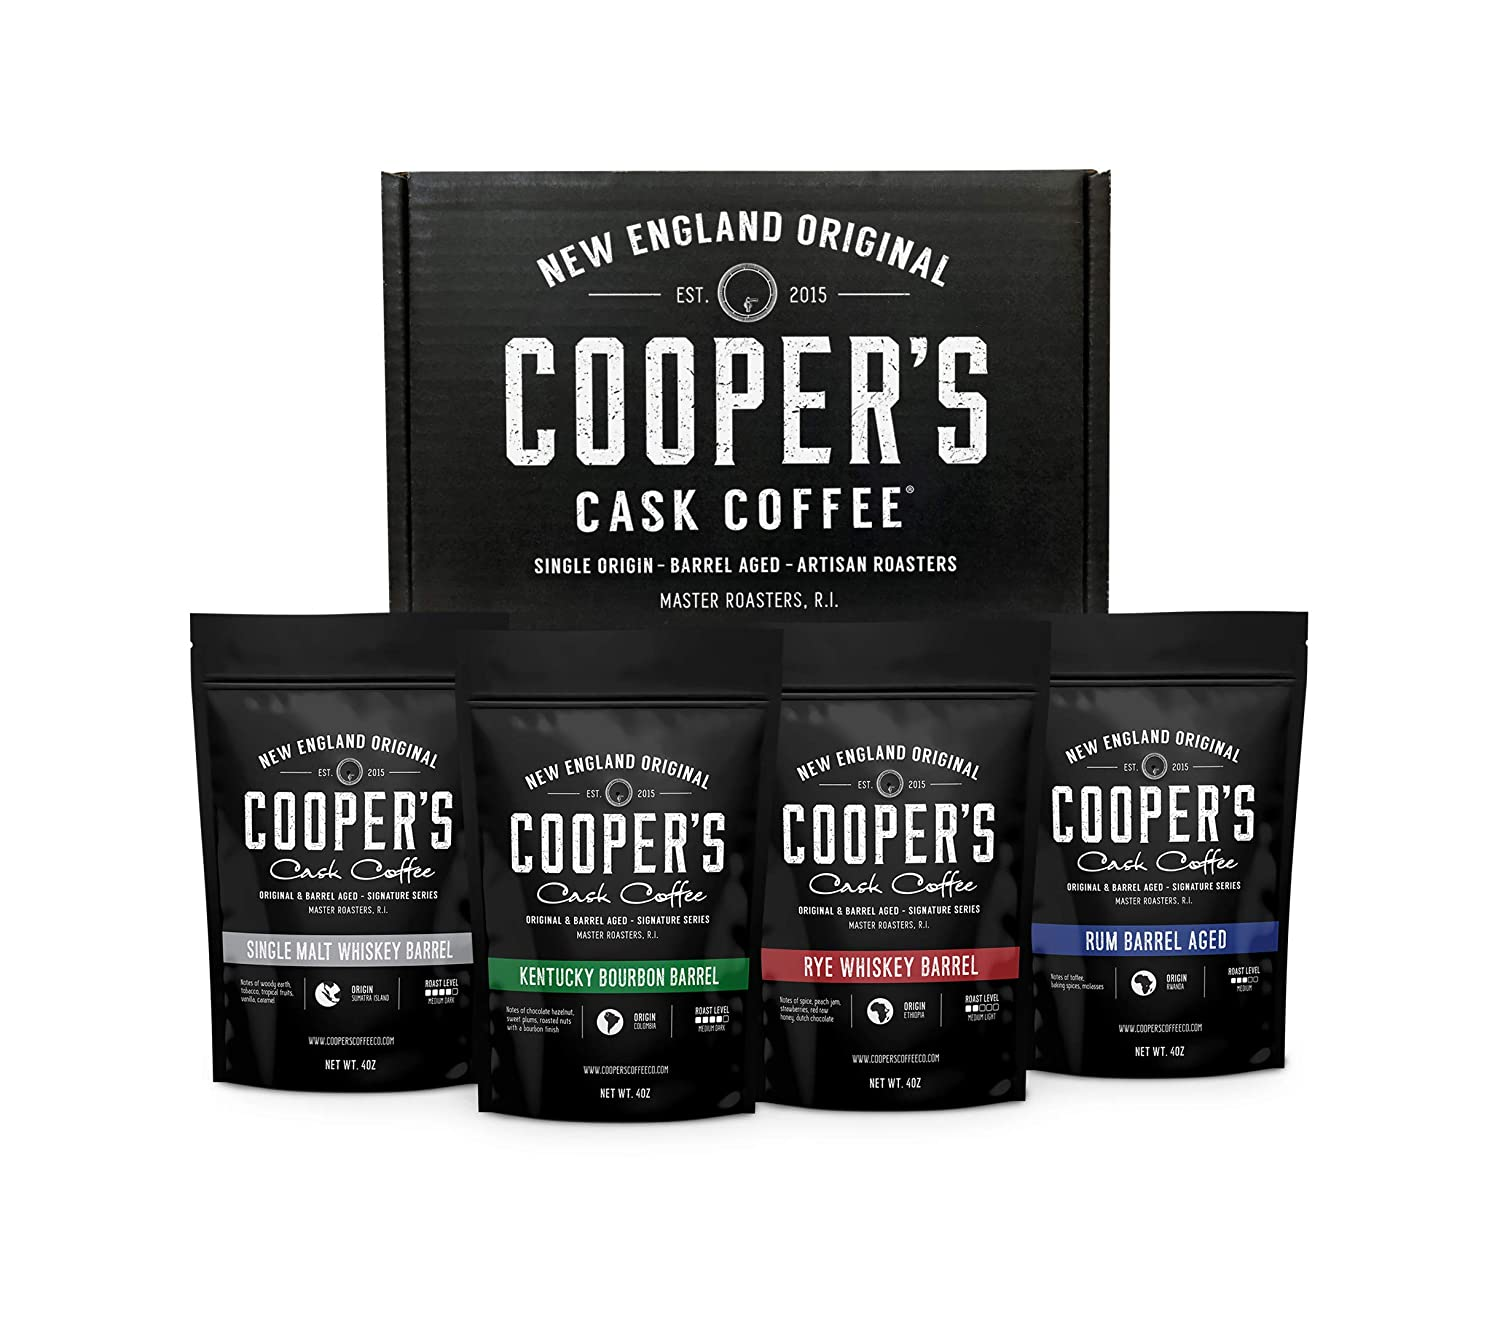 Cooper's Cask Coffee Bourbon & Whiskey Barrel Aged Coffee gift set, best gifts for coworkers